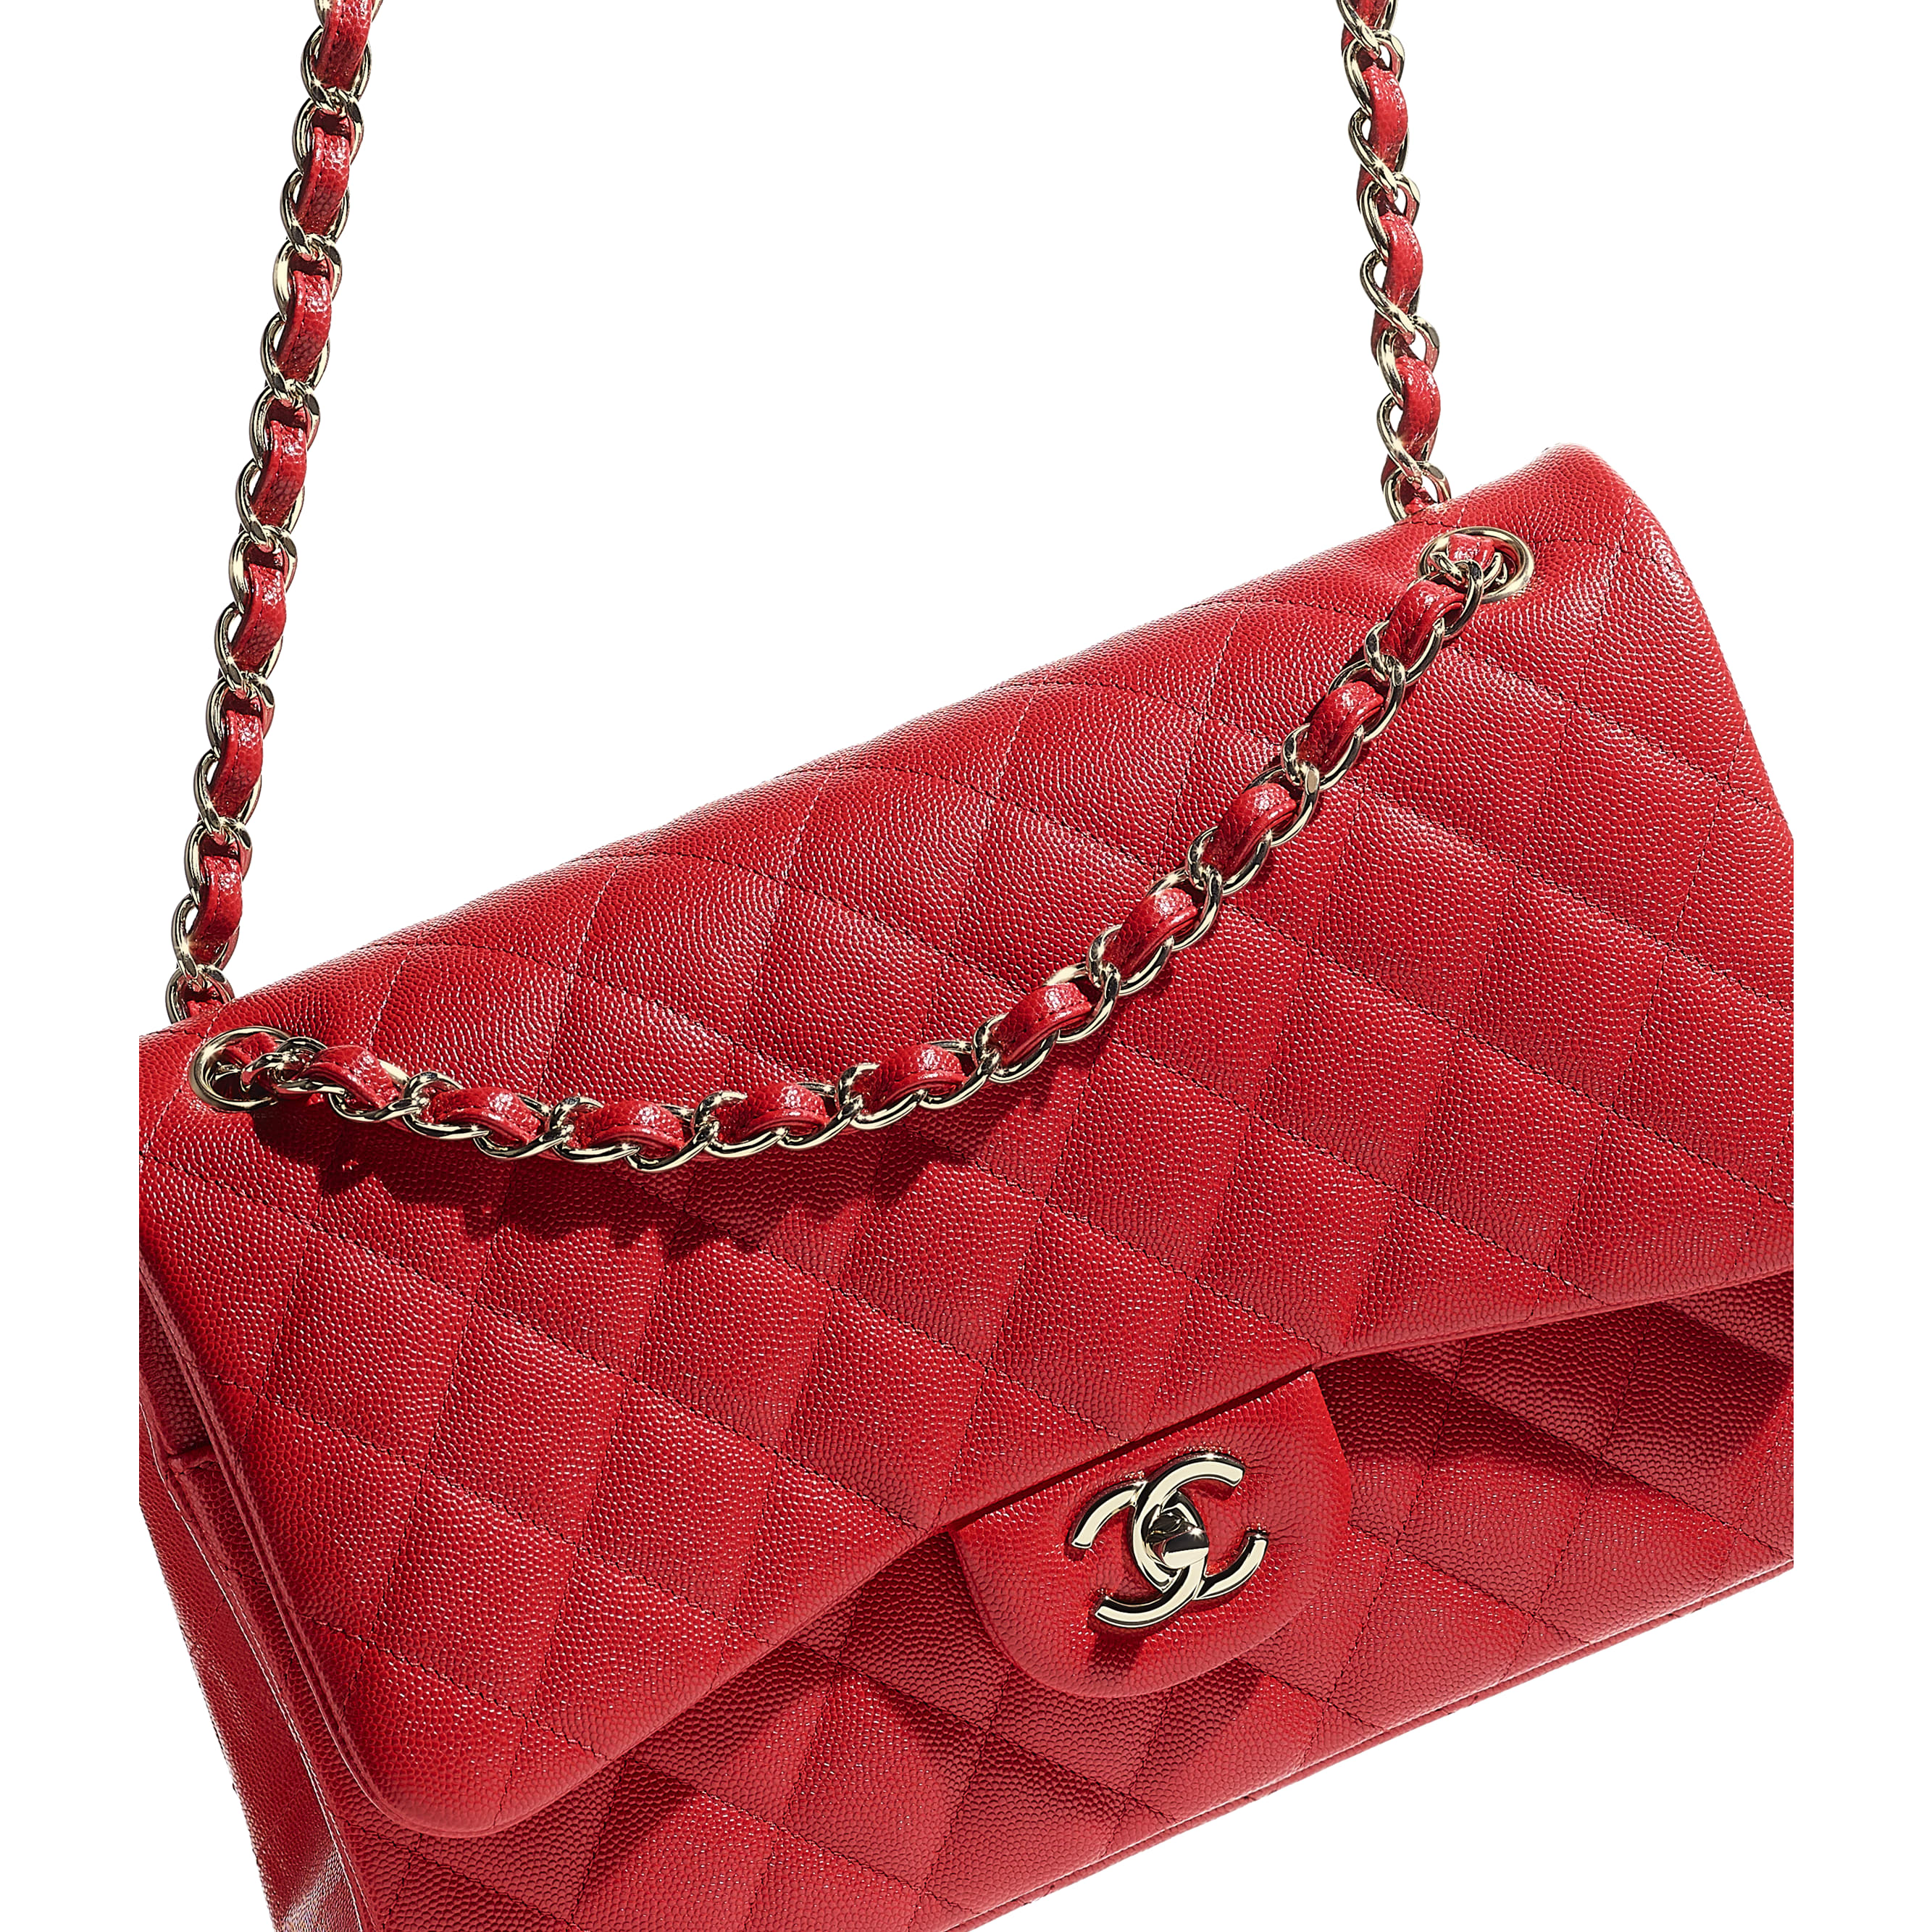 Large Classic Handbag - Red - Grained Calfskin & Gold-Tone Metal - CHANEL - Extra view - see standard sized version